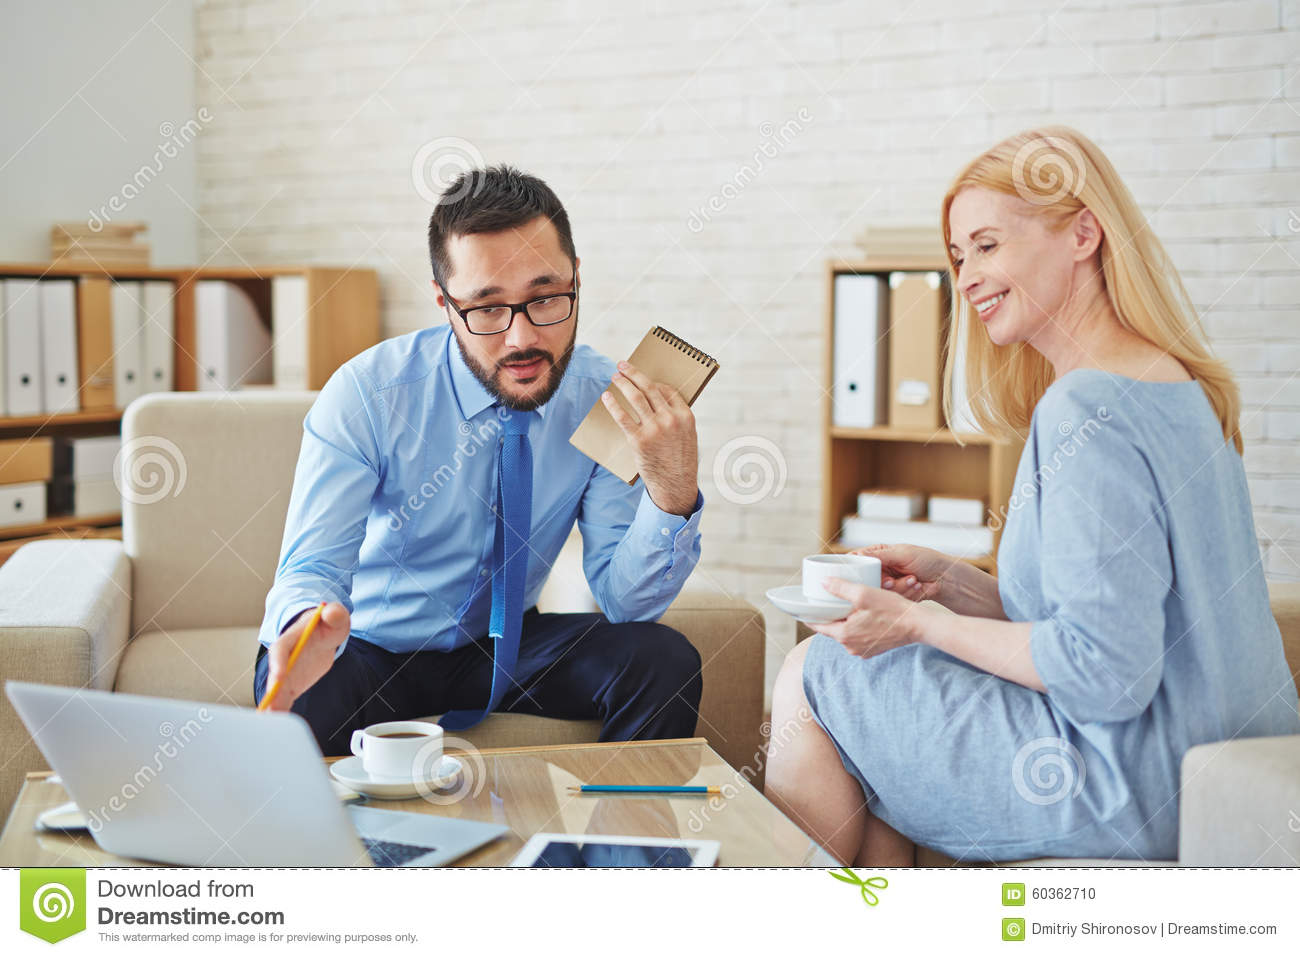 a discussion of information in workplace Teamwork is an essential part of workplace success  respectfully in discussion,  carry out assigned tasks, and defer to the leader in the best  this means: you  are willing to share information, experience, and knowledge with the group.